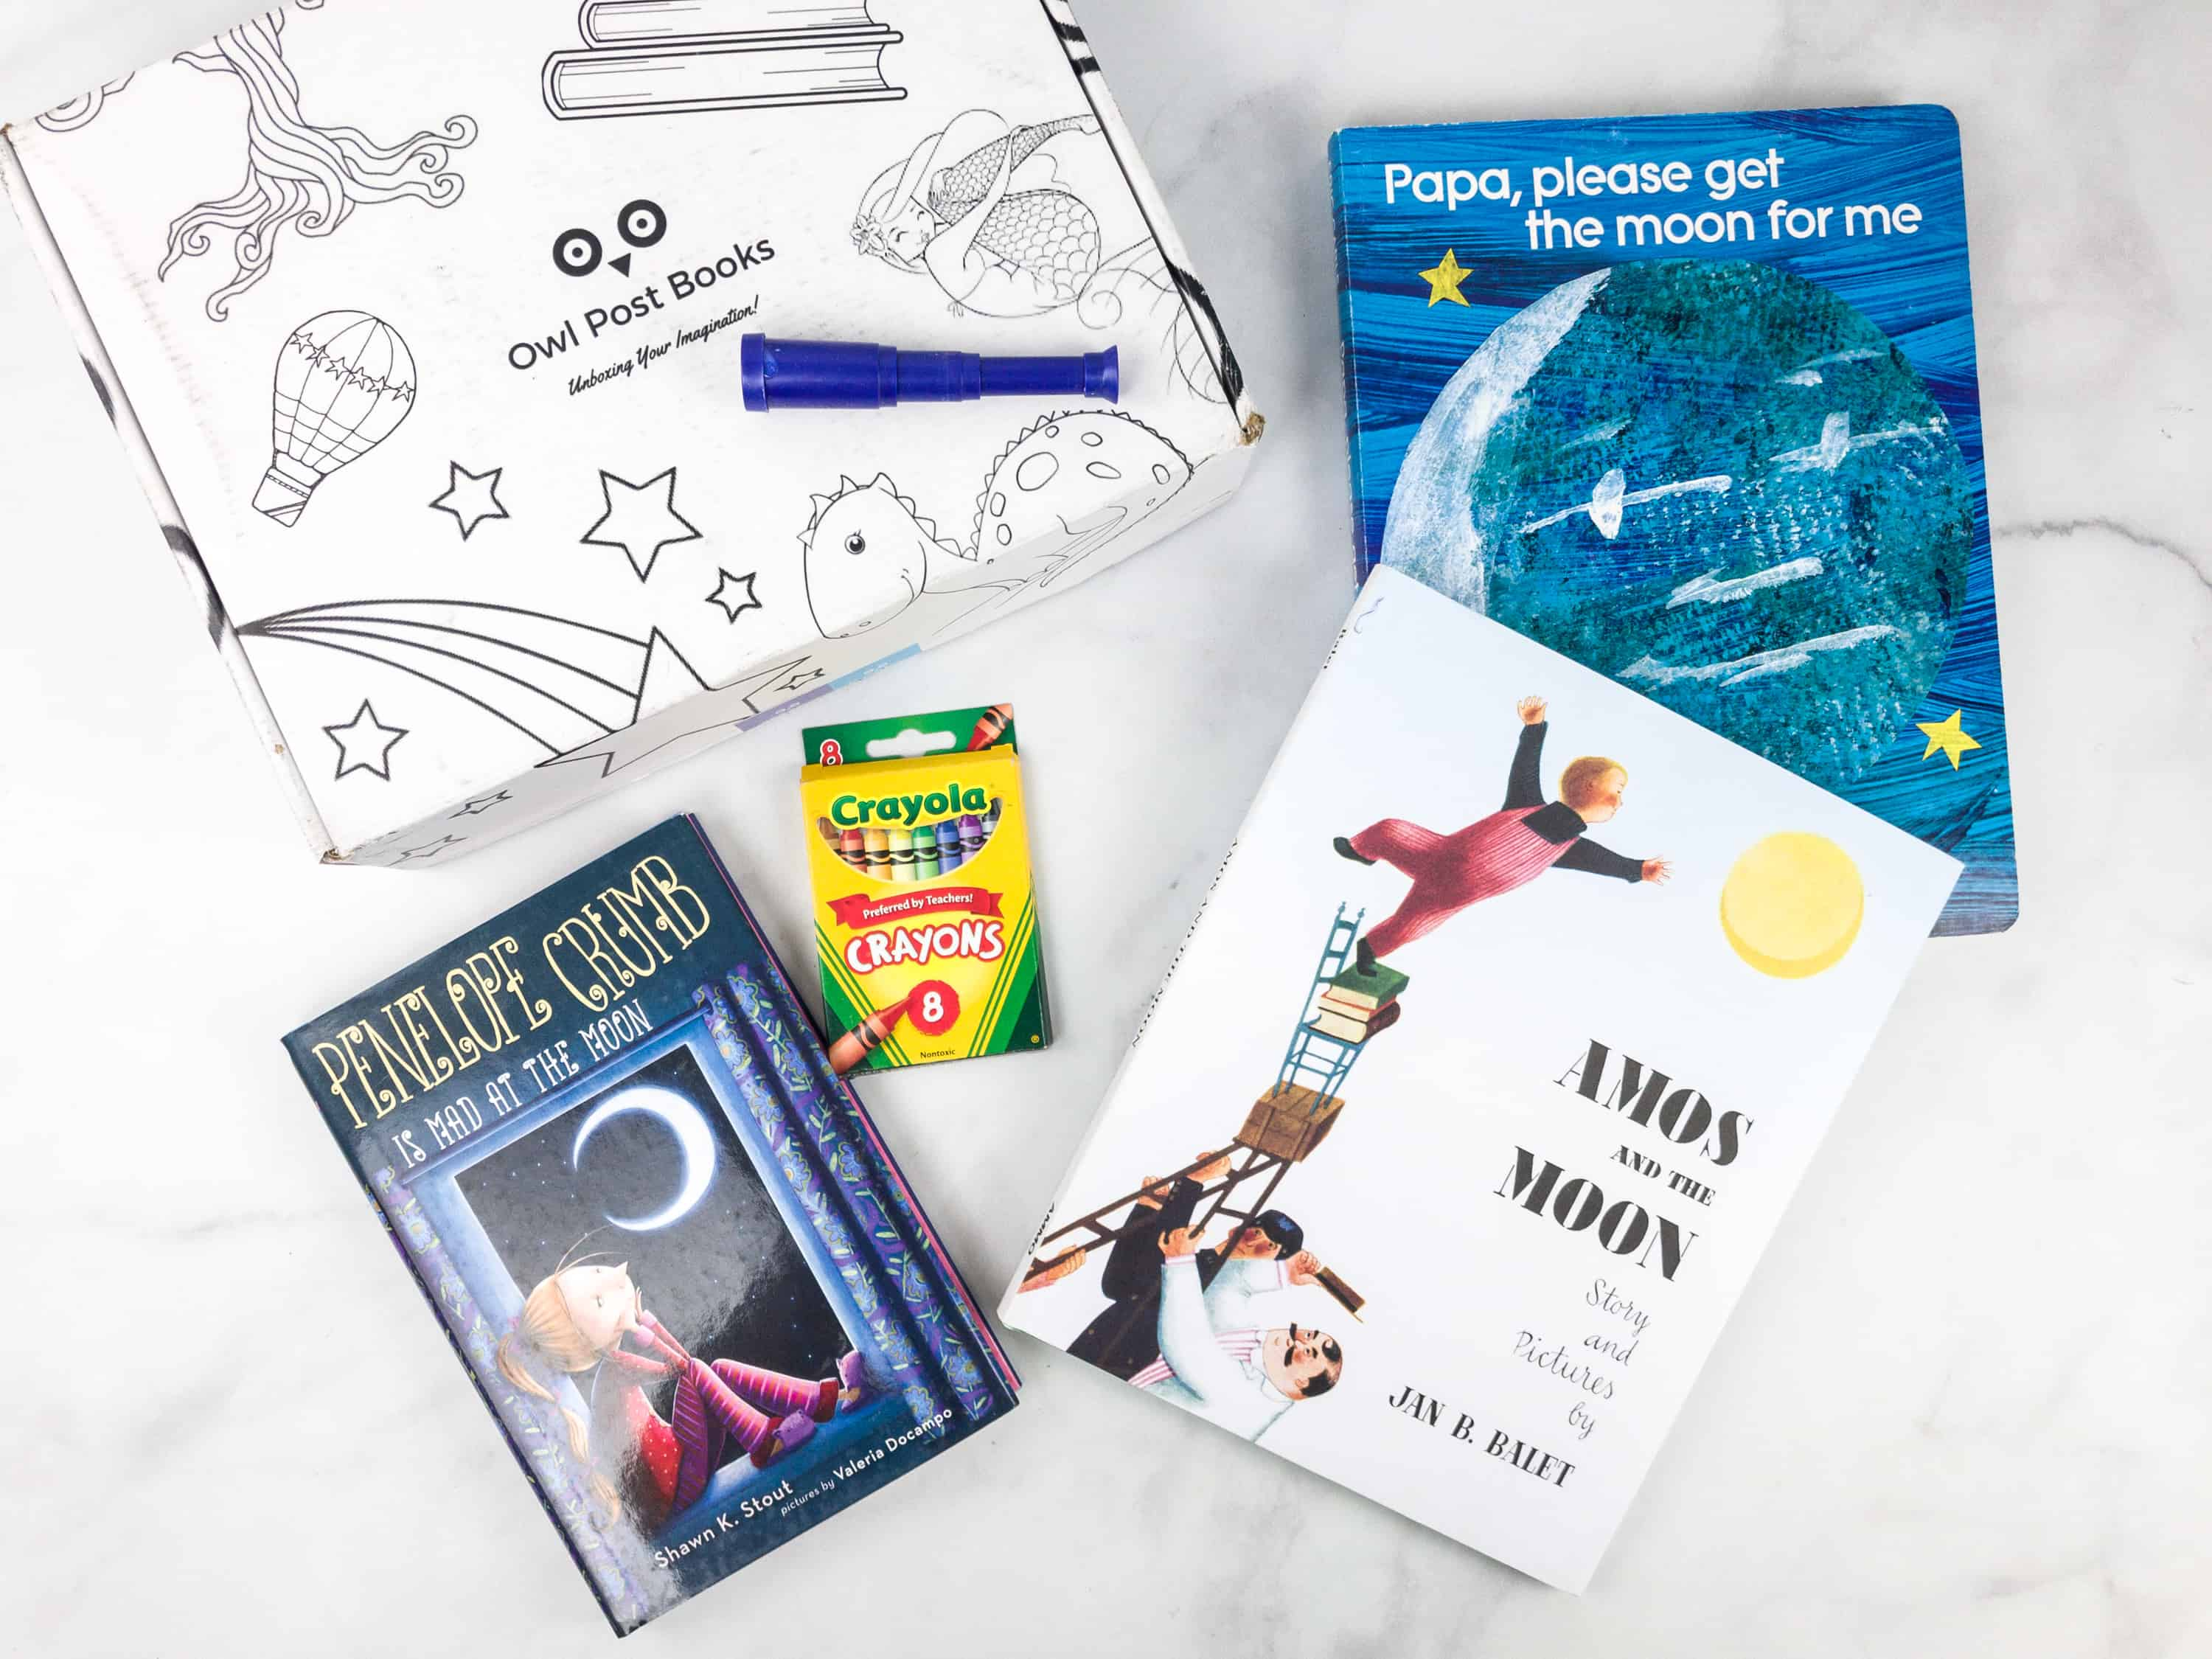 Owl Post Books Imagination Box Black Friday Deal: Save 20% off your entire order!